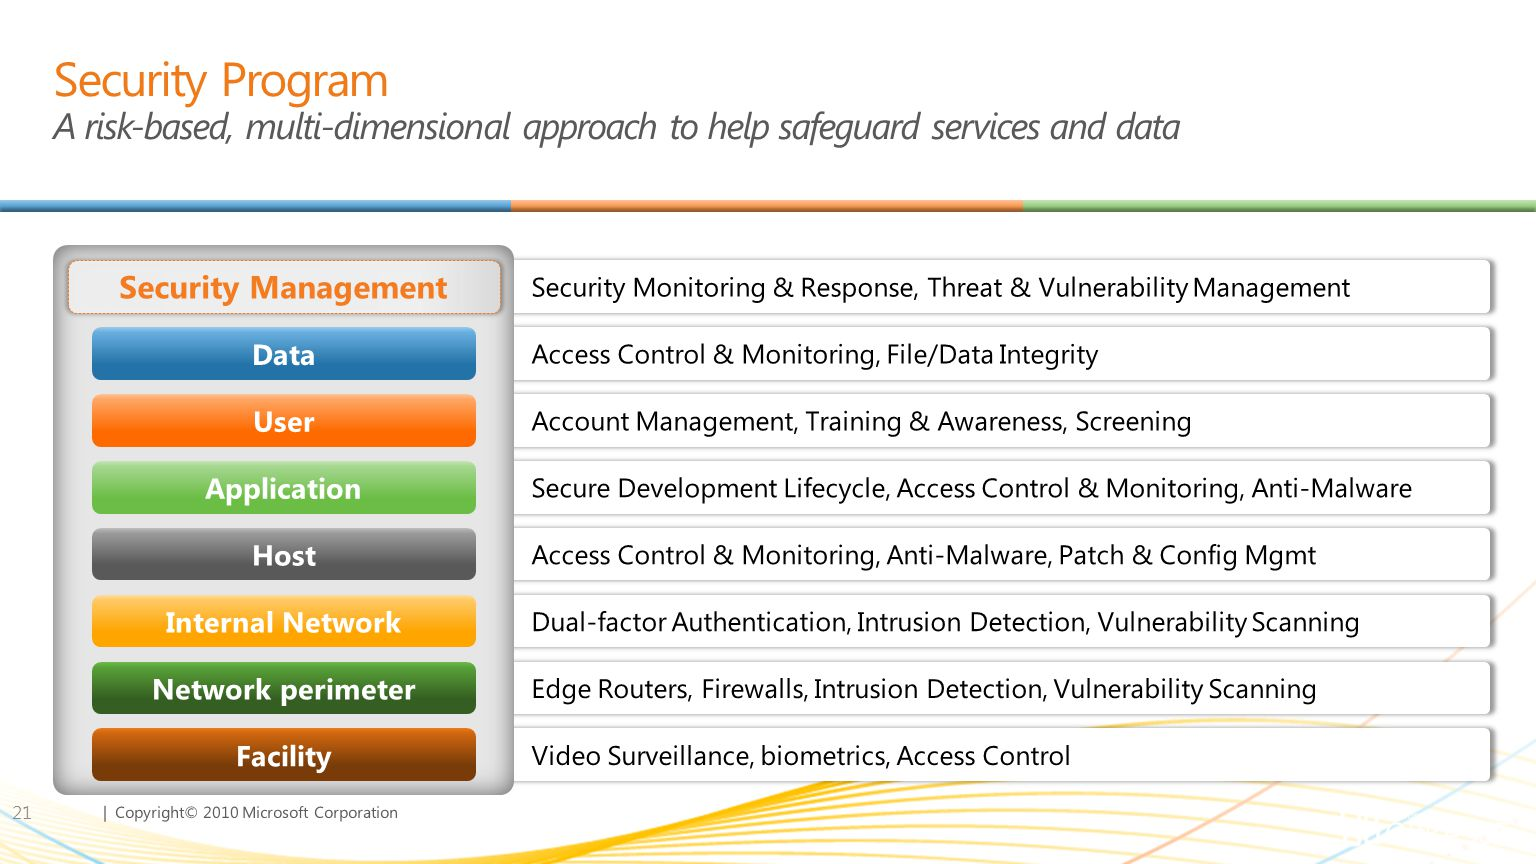 Security Program A risk-based, multi-dimensional approach to help safeguard services and data